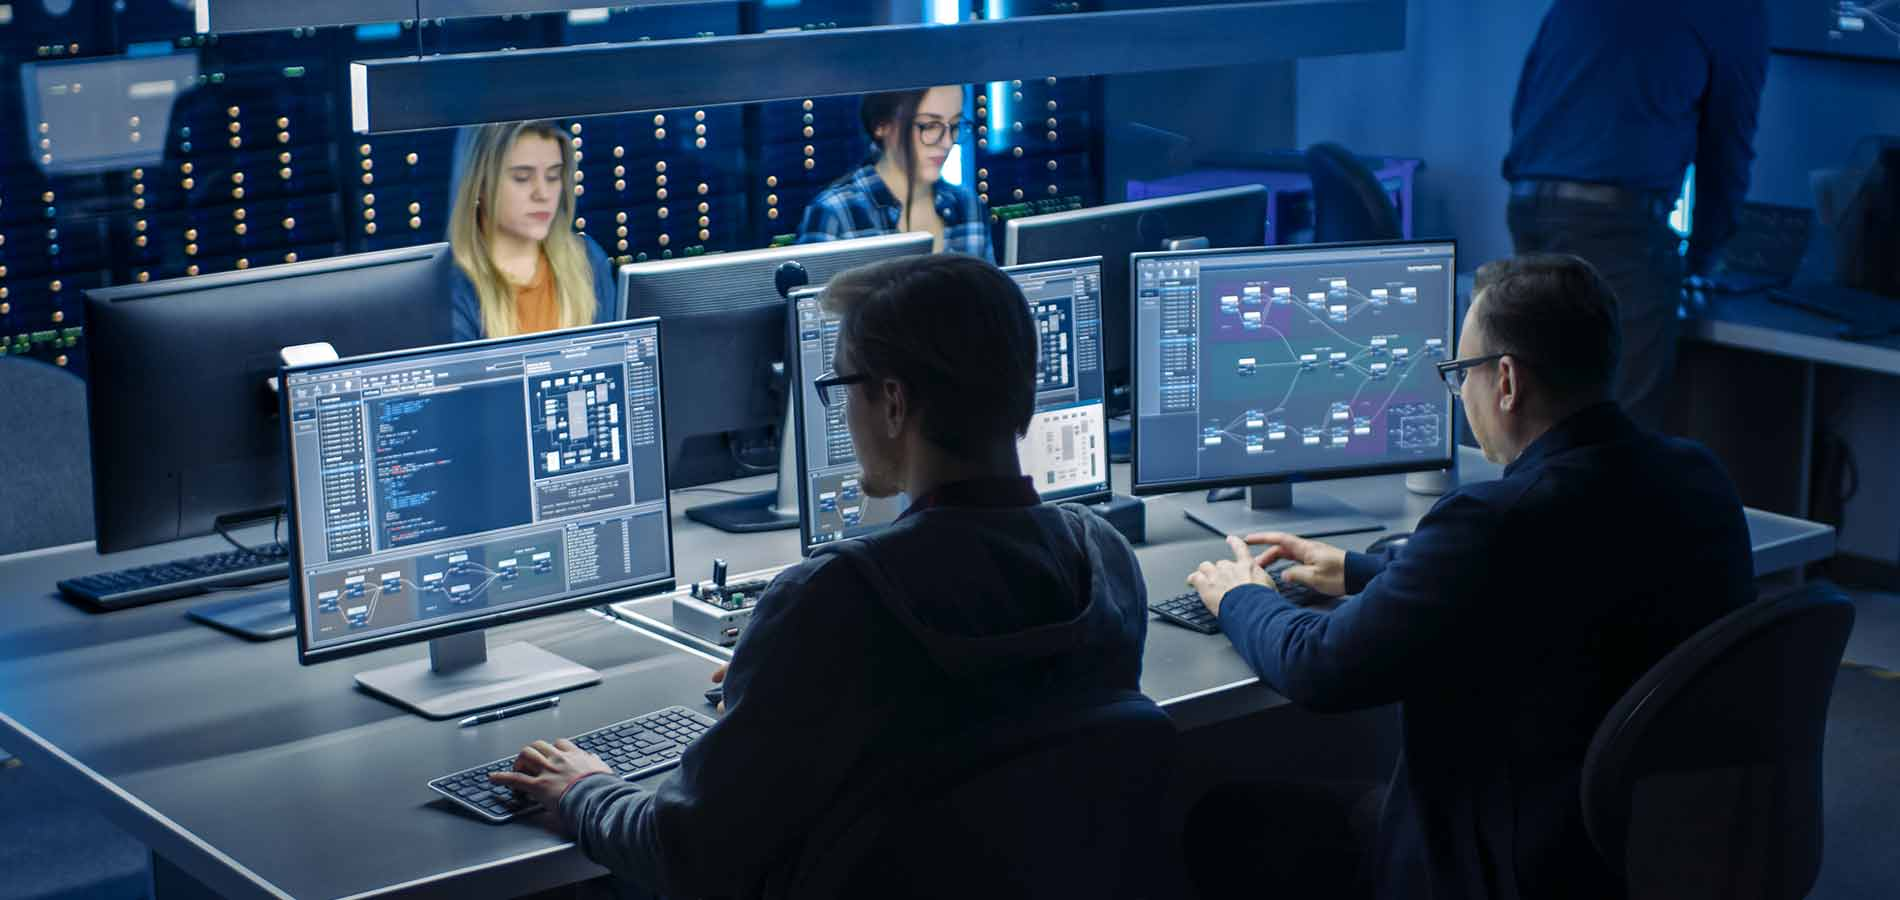 Why choose a career in Cyber Security